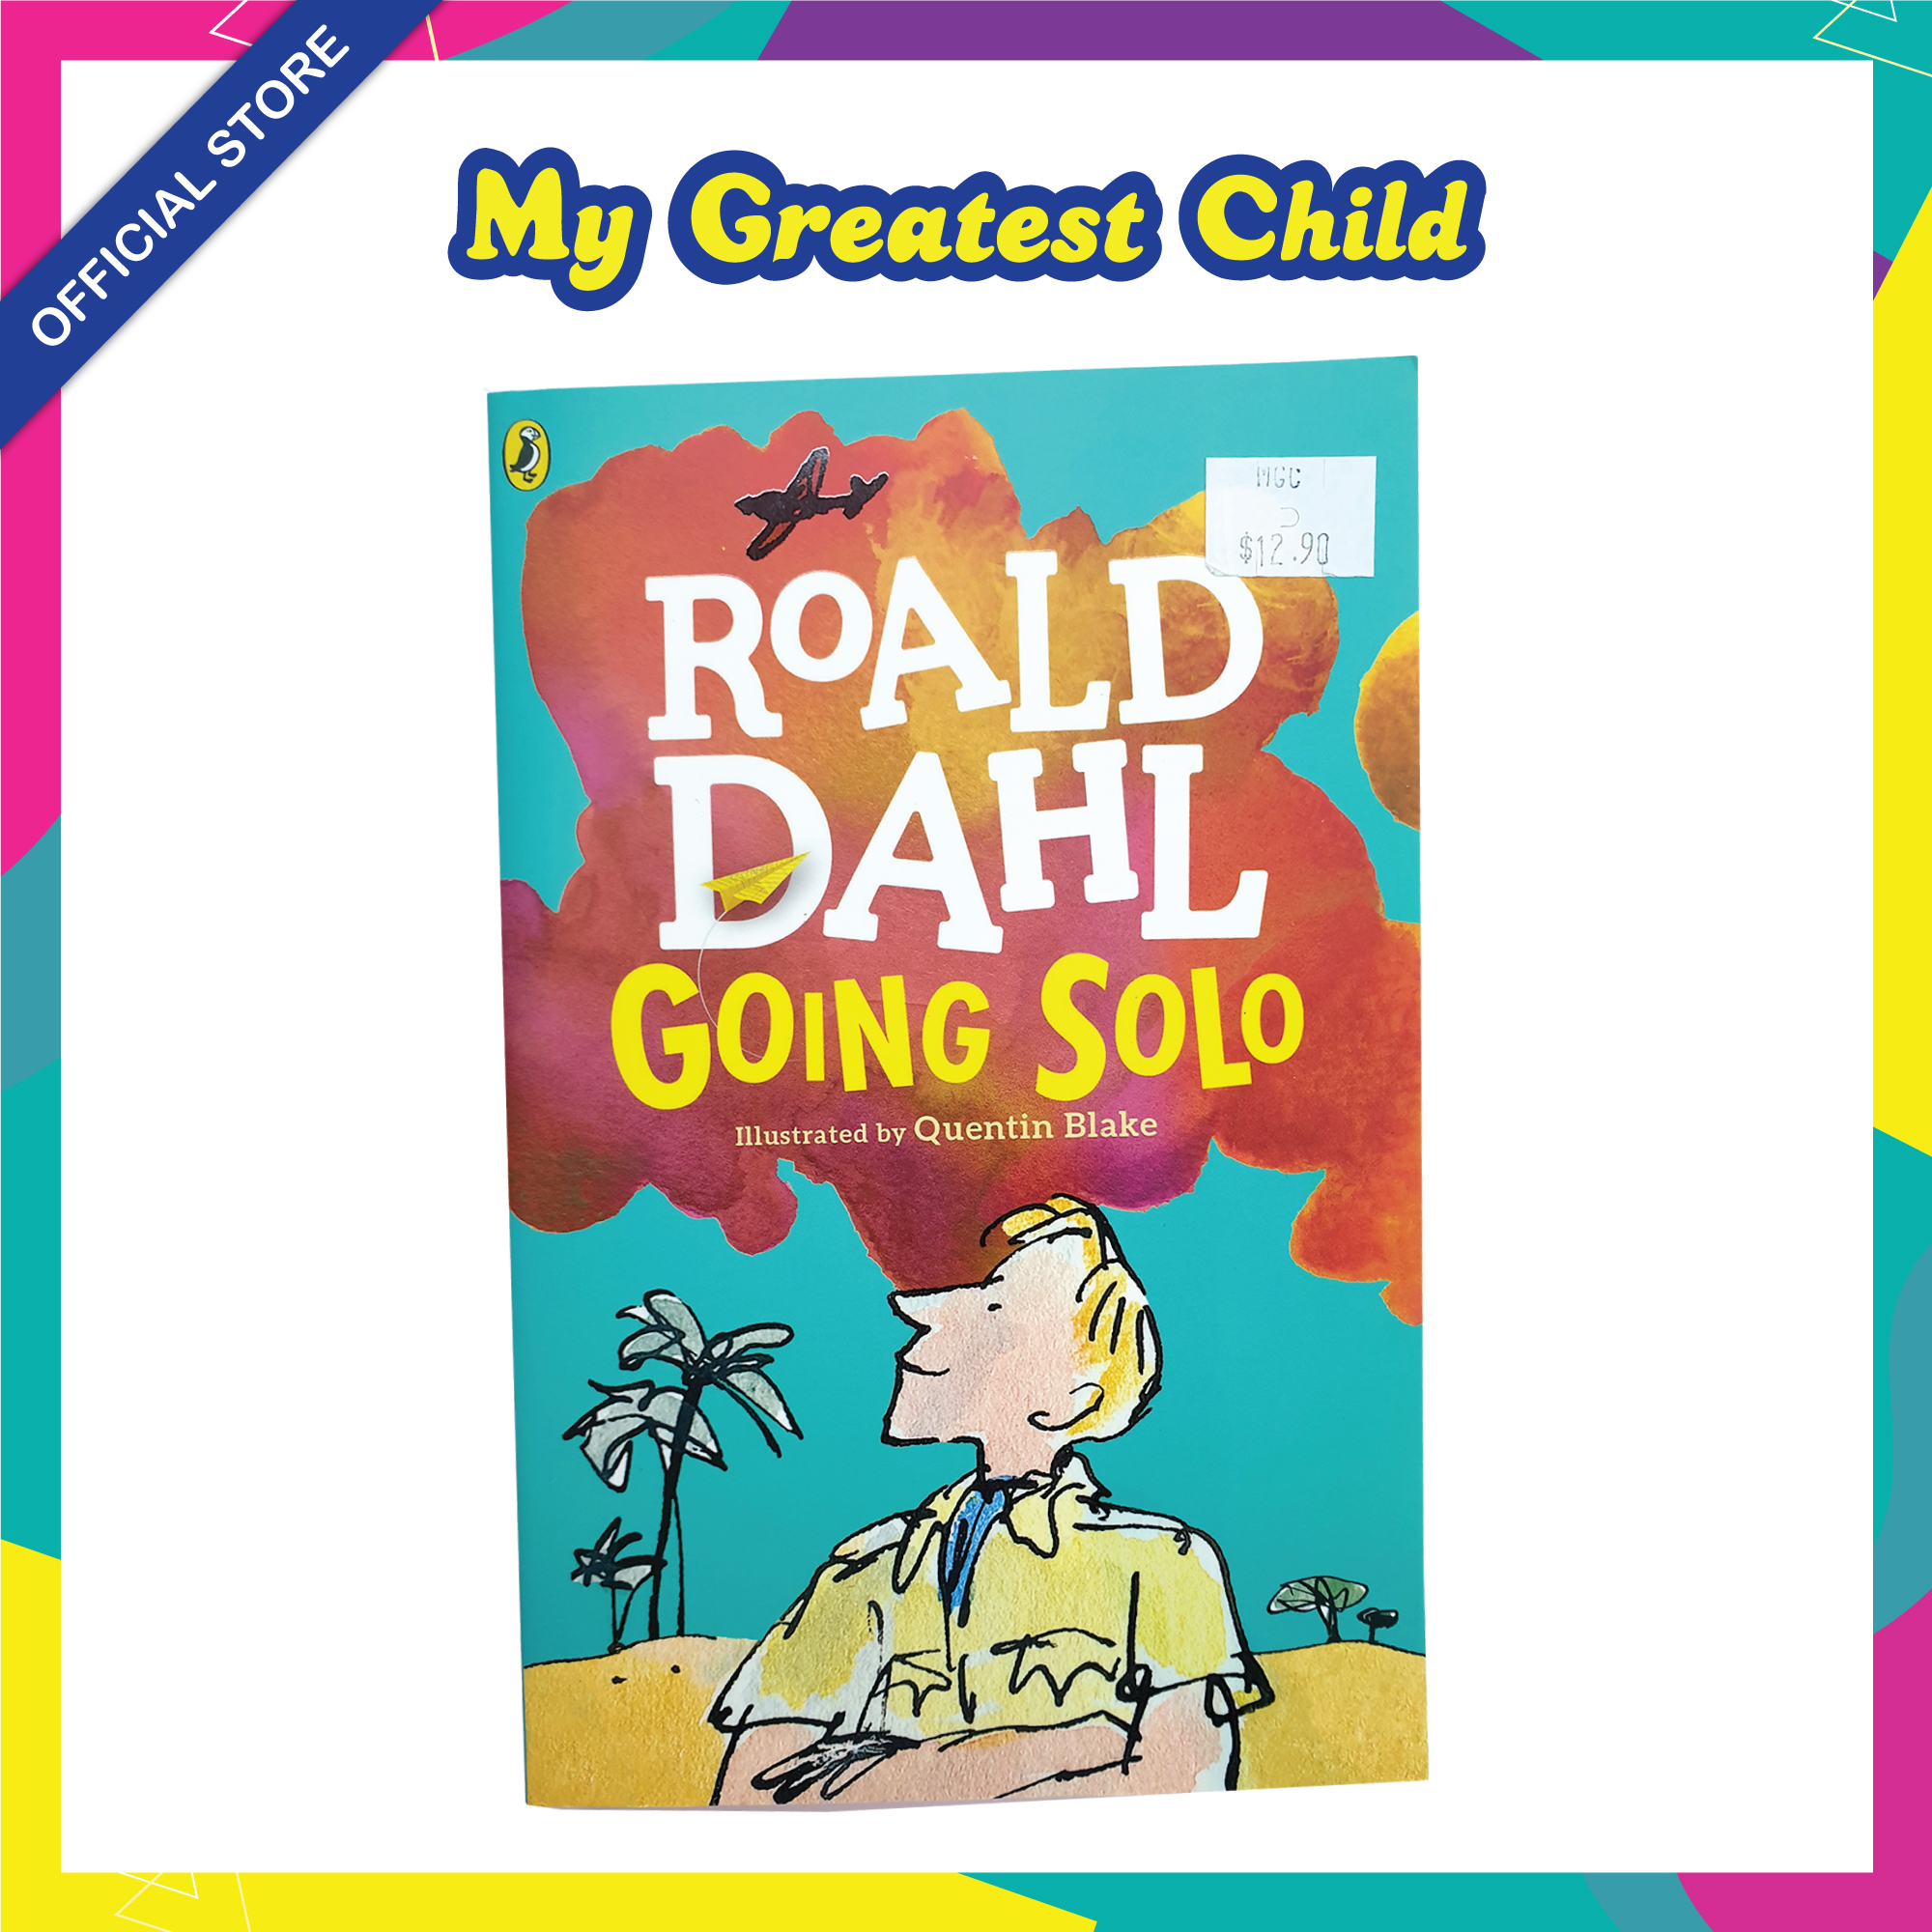 Going Solo - Roald Dahl English Paperback Childrens Book (For Ages 7+)